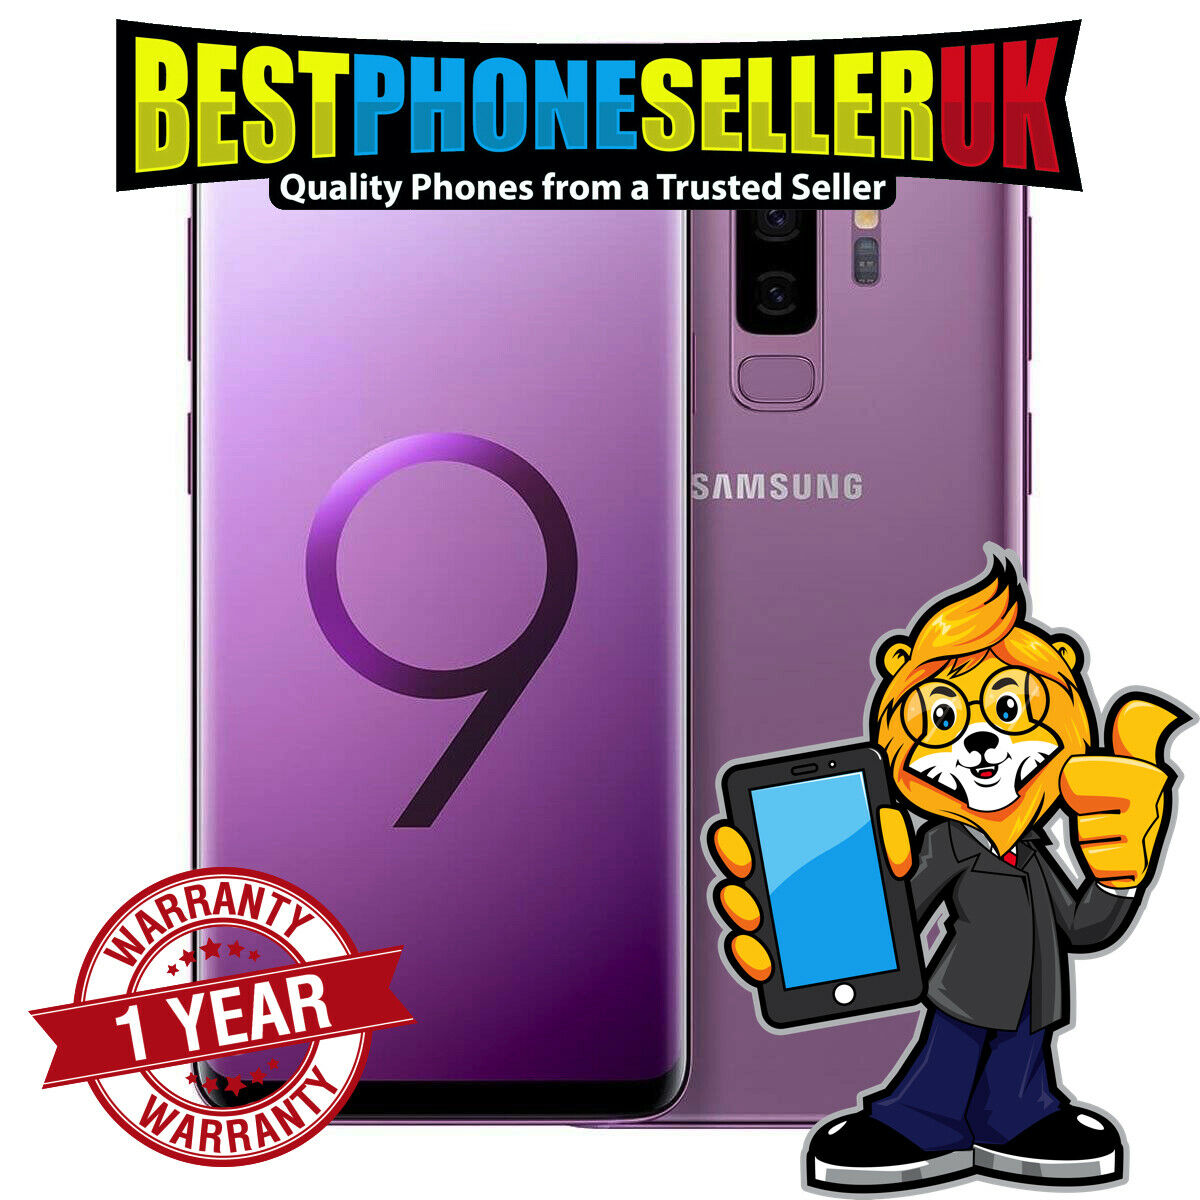 Android Phone - ☆☆☆☆ GRADE A - Samsung Galaxy S9 G960F 64gb Unlocked Smart Phone - LILAC ☆☆☆☆